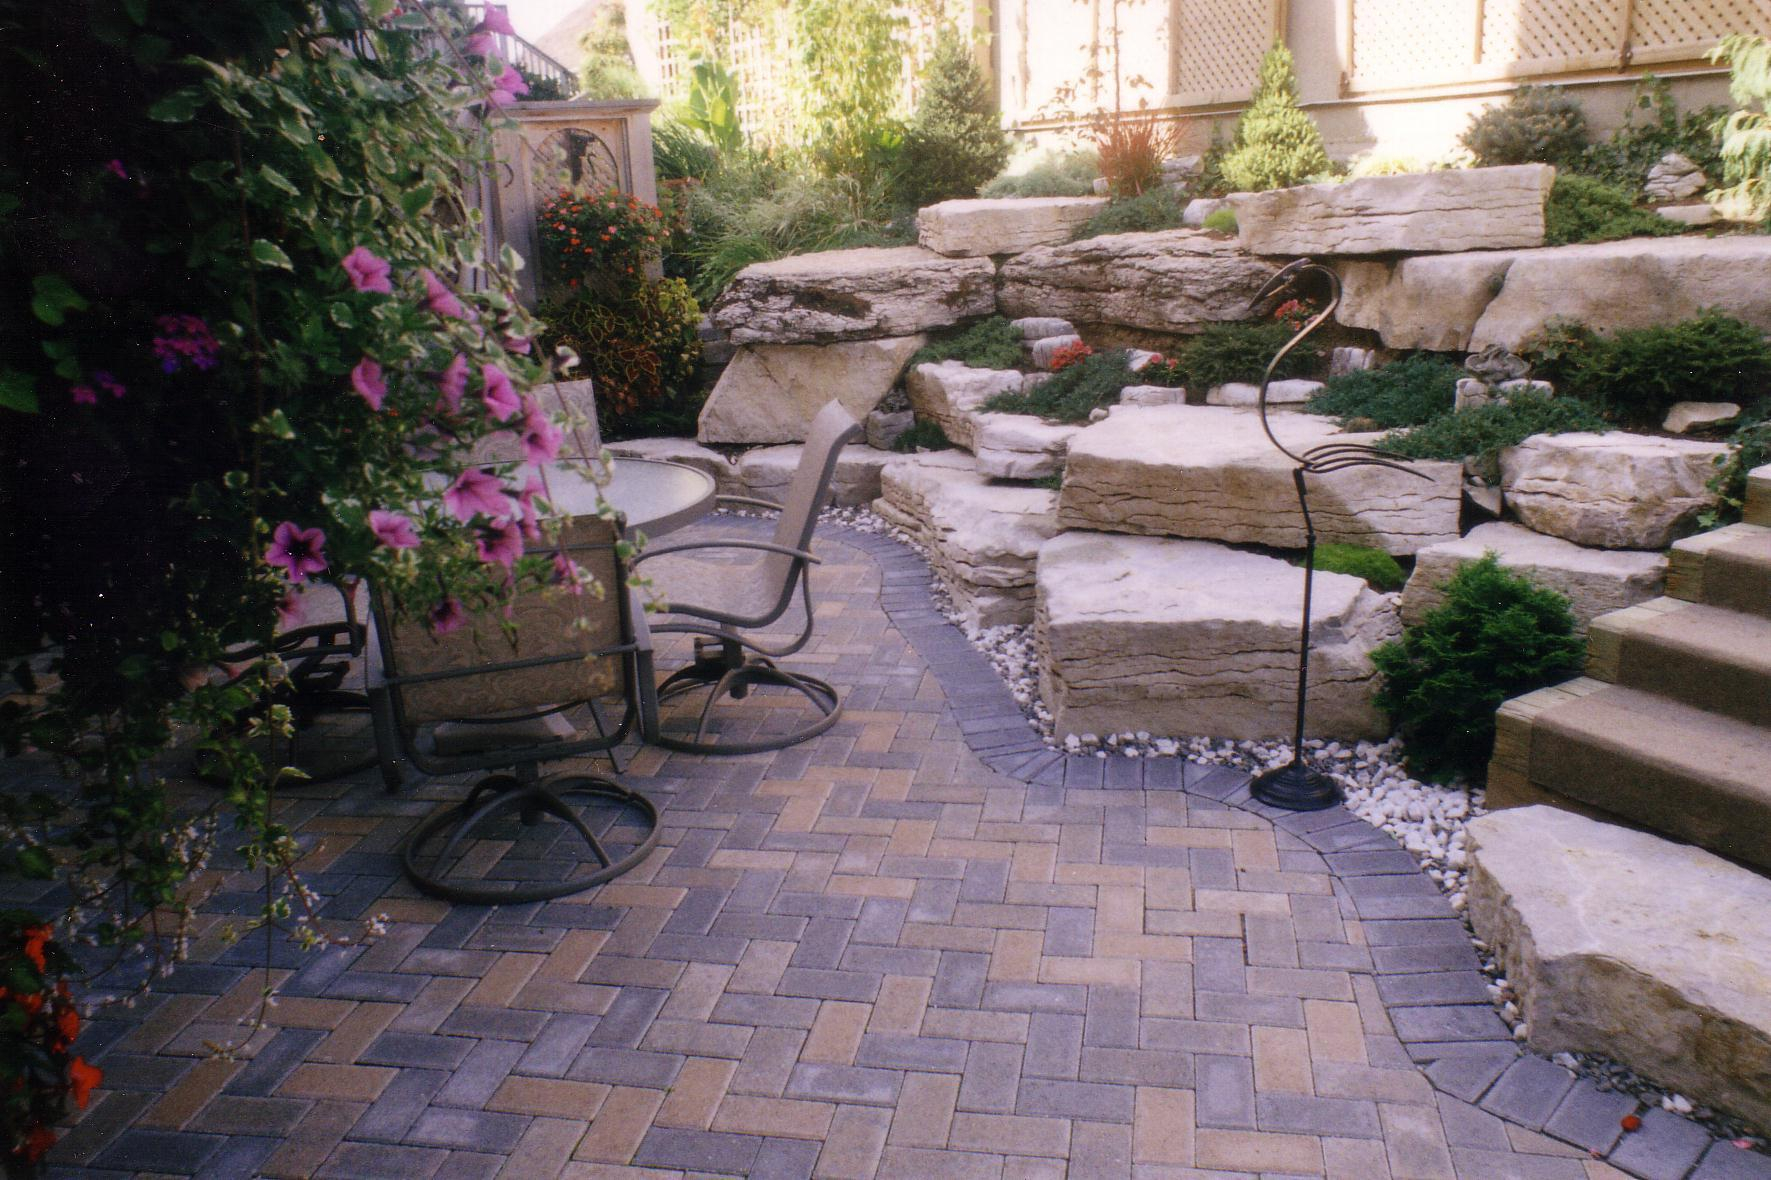 Simple Backyard Patio Ideas For Small Spaces Covered Covered Patio in 13 Awesome Concepts of How to Make Simple Patio Ideas For Small Backyards